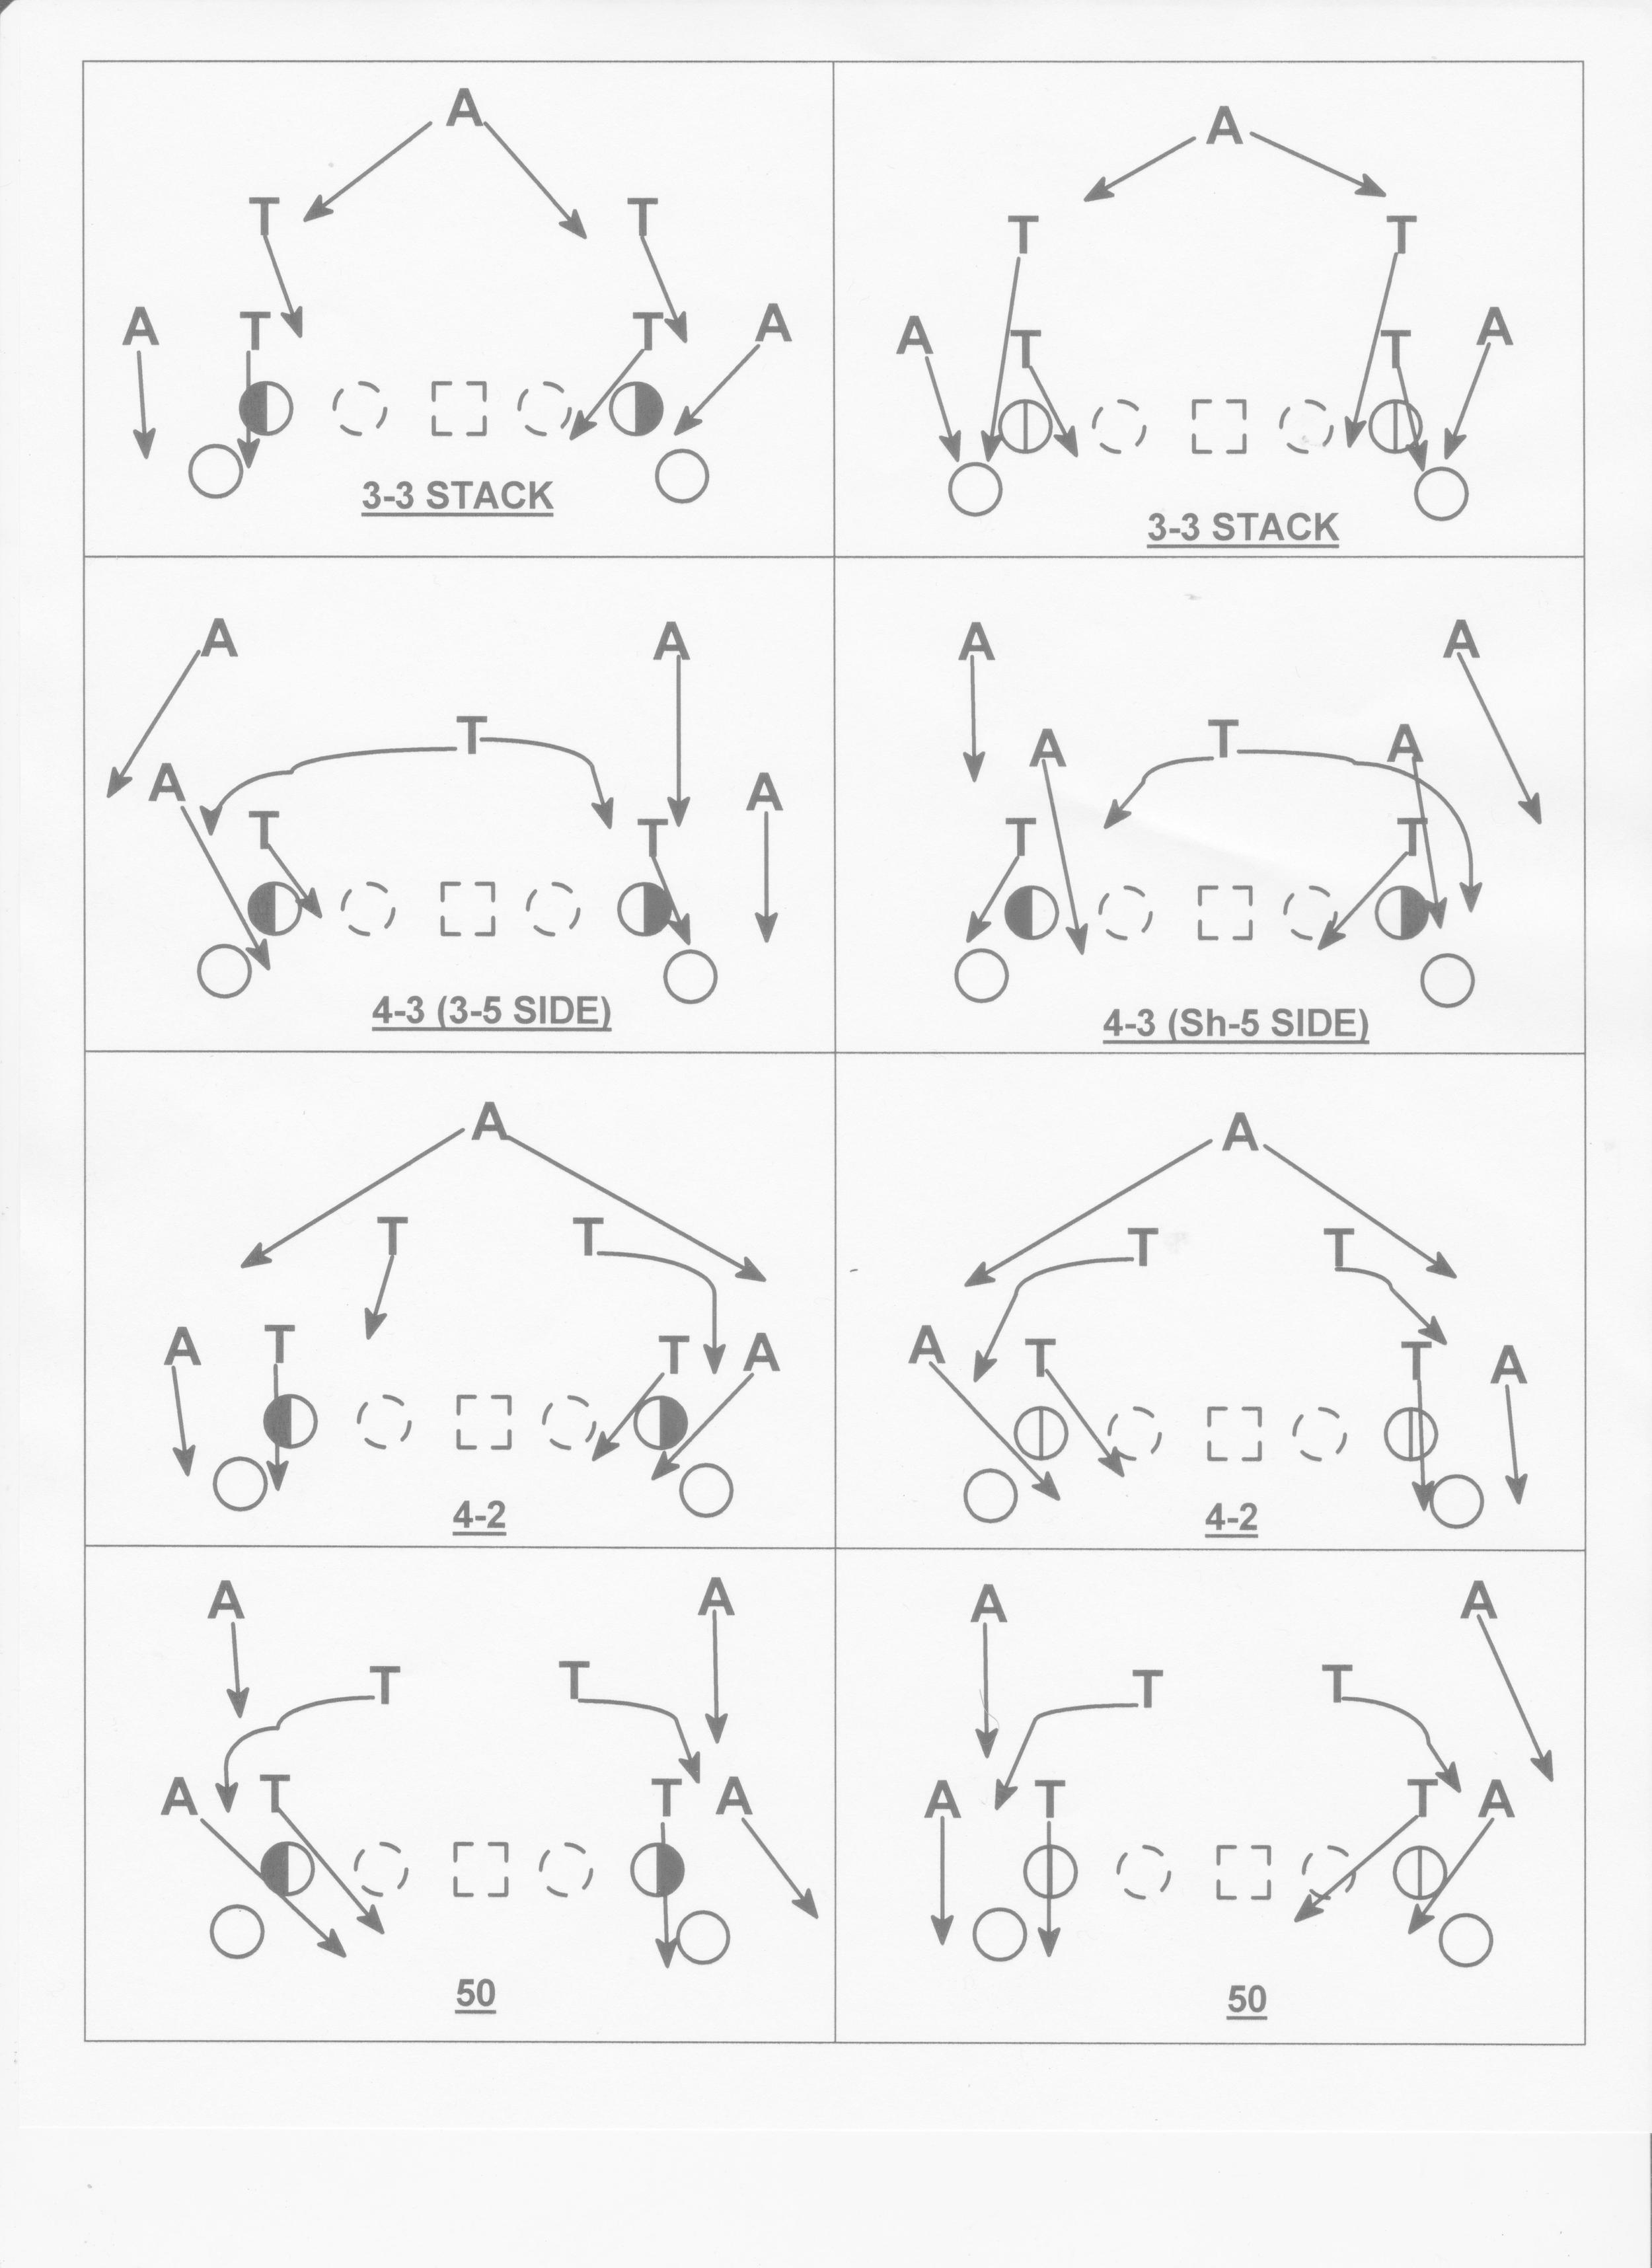 Drill Setup & Defensive Alignments/Movements - Zone Dive and Inside Veer (Load Tag vs 8 man fronts)